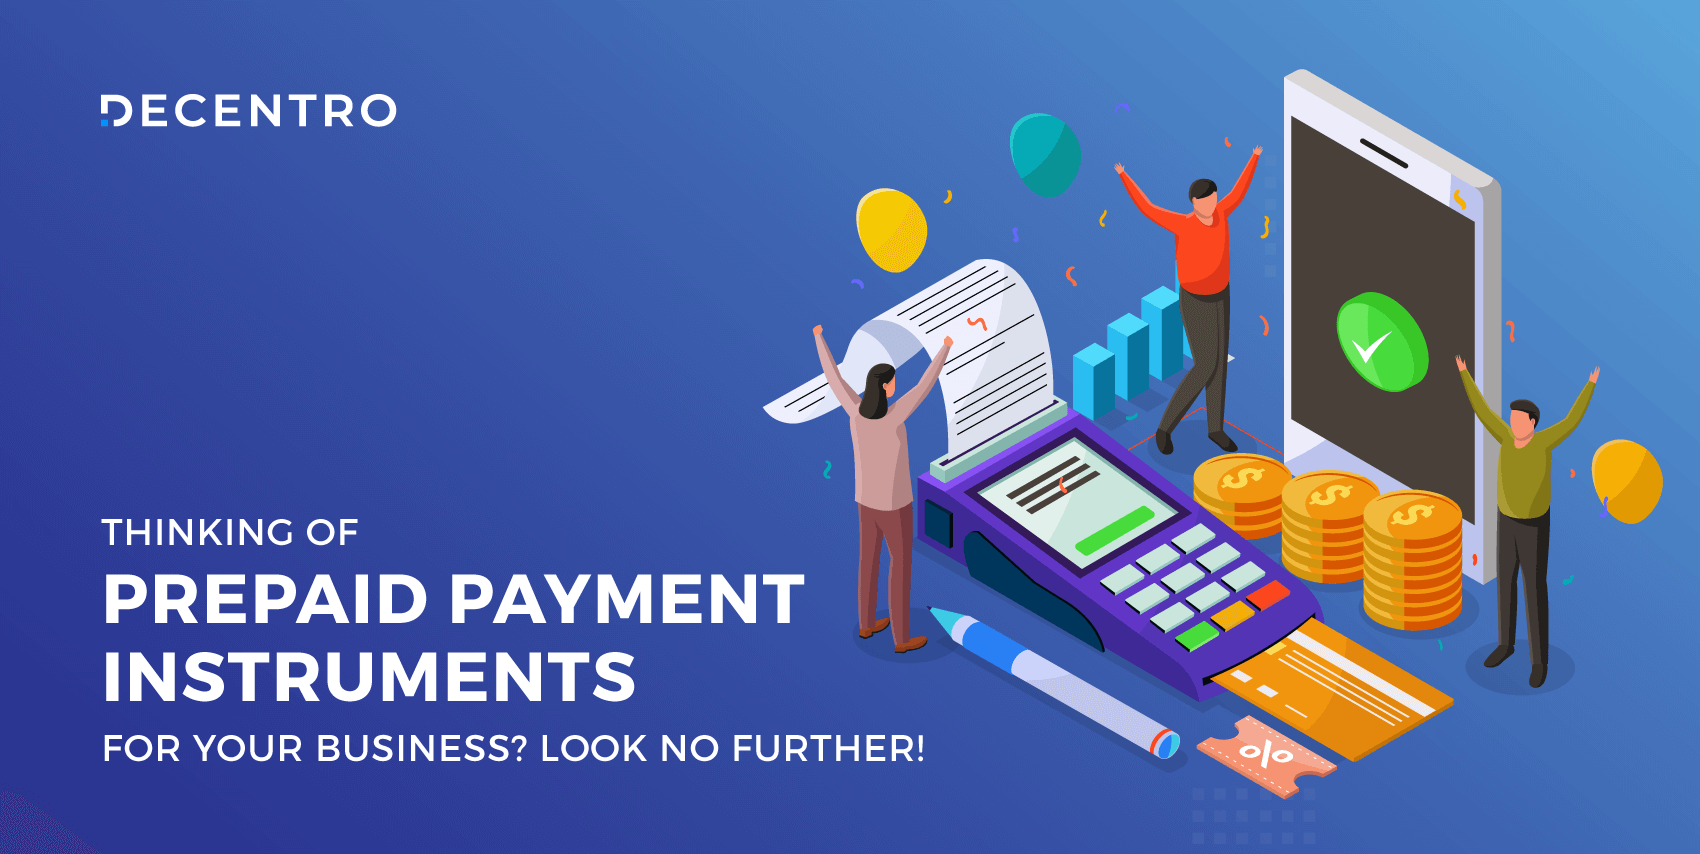 Are you planning to use Prepaid Payment Instruments for growing your business? Look no further! Here's the Decentro 2021 handbook on PPIs you shouldn't miss!